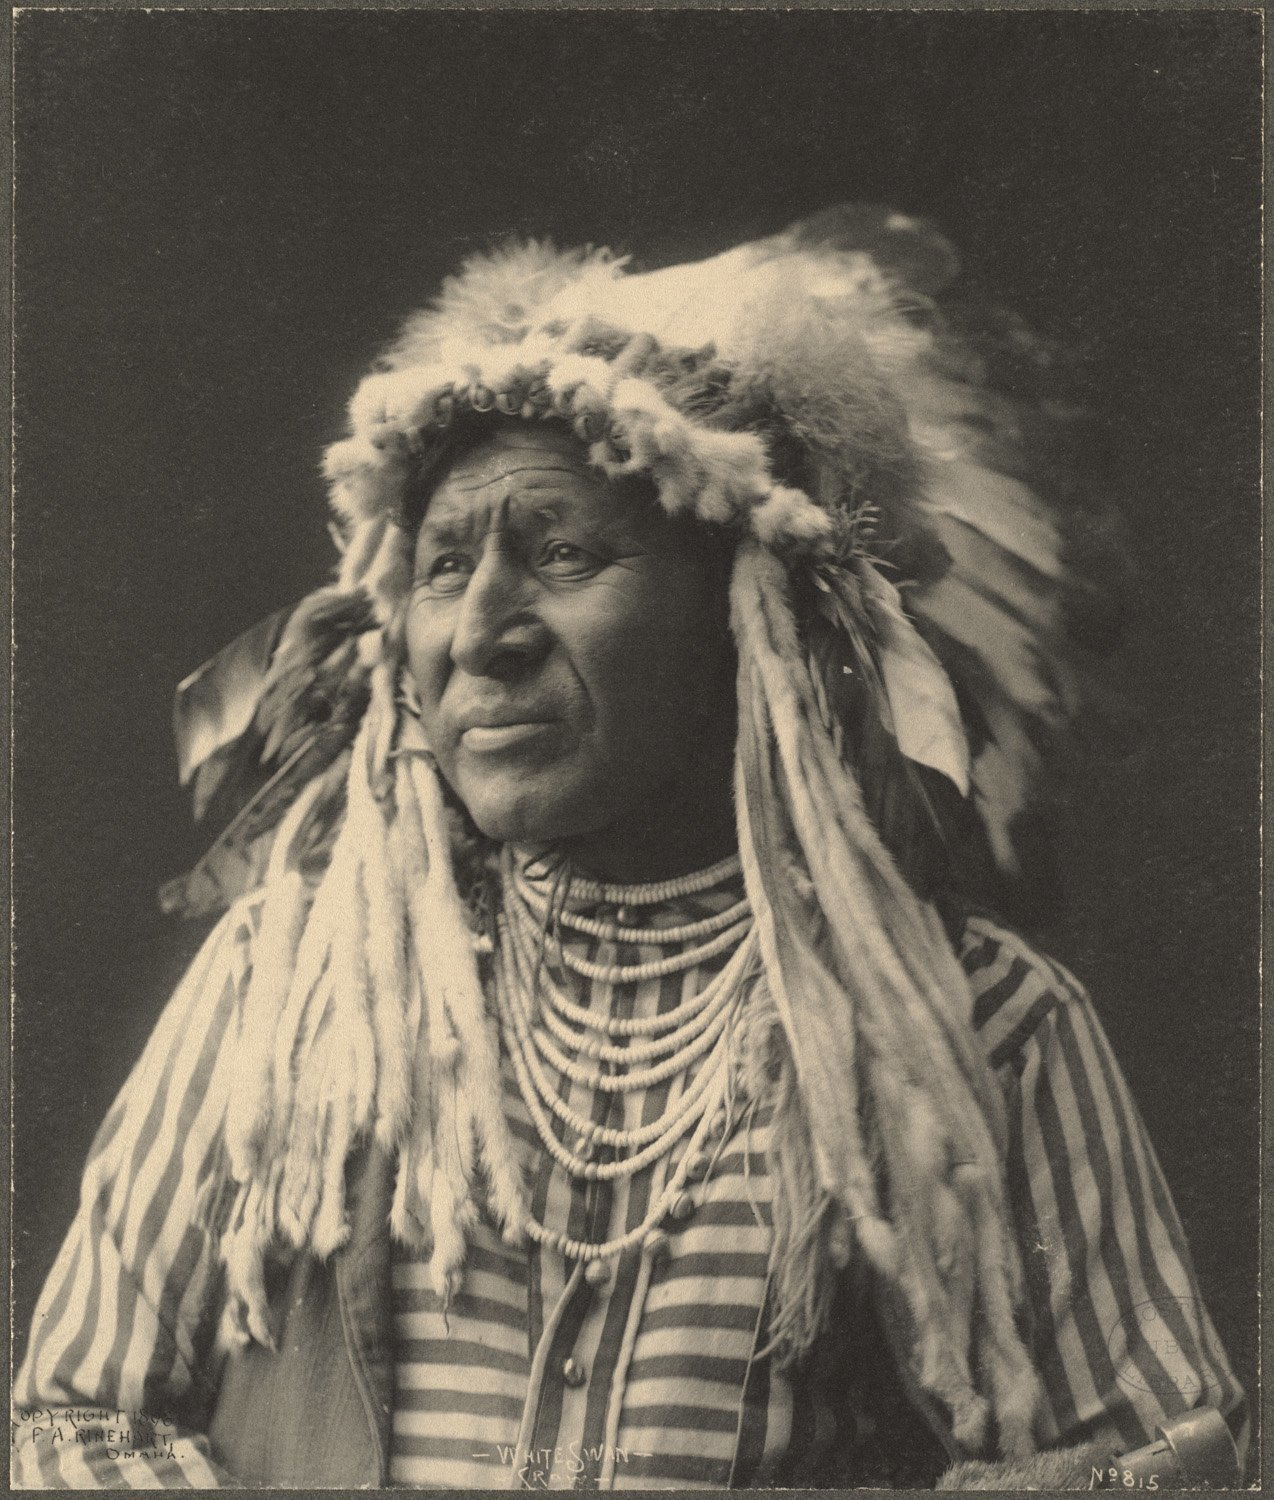 White Swan, Crow, 1899. (Photo by Frank A. Rinehart)